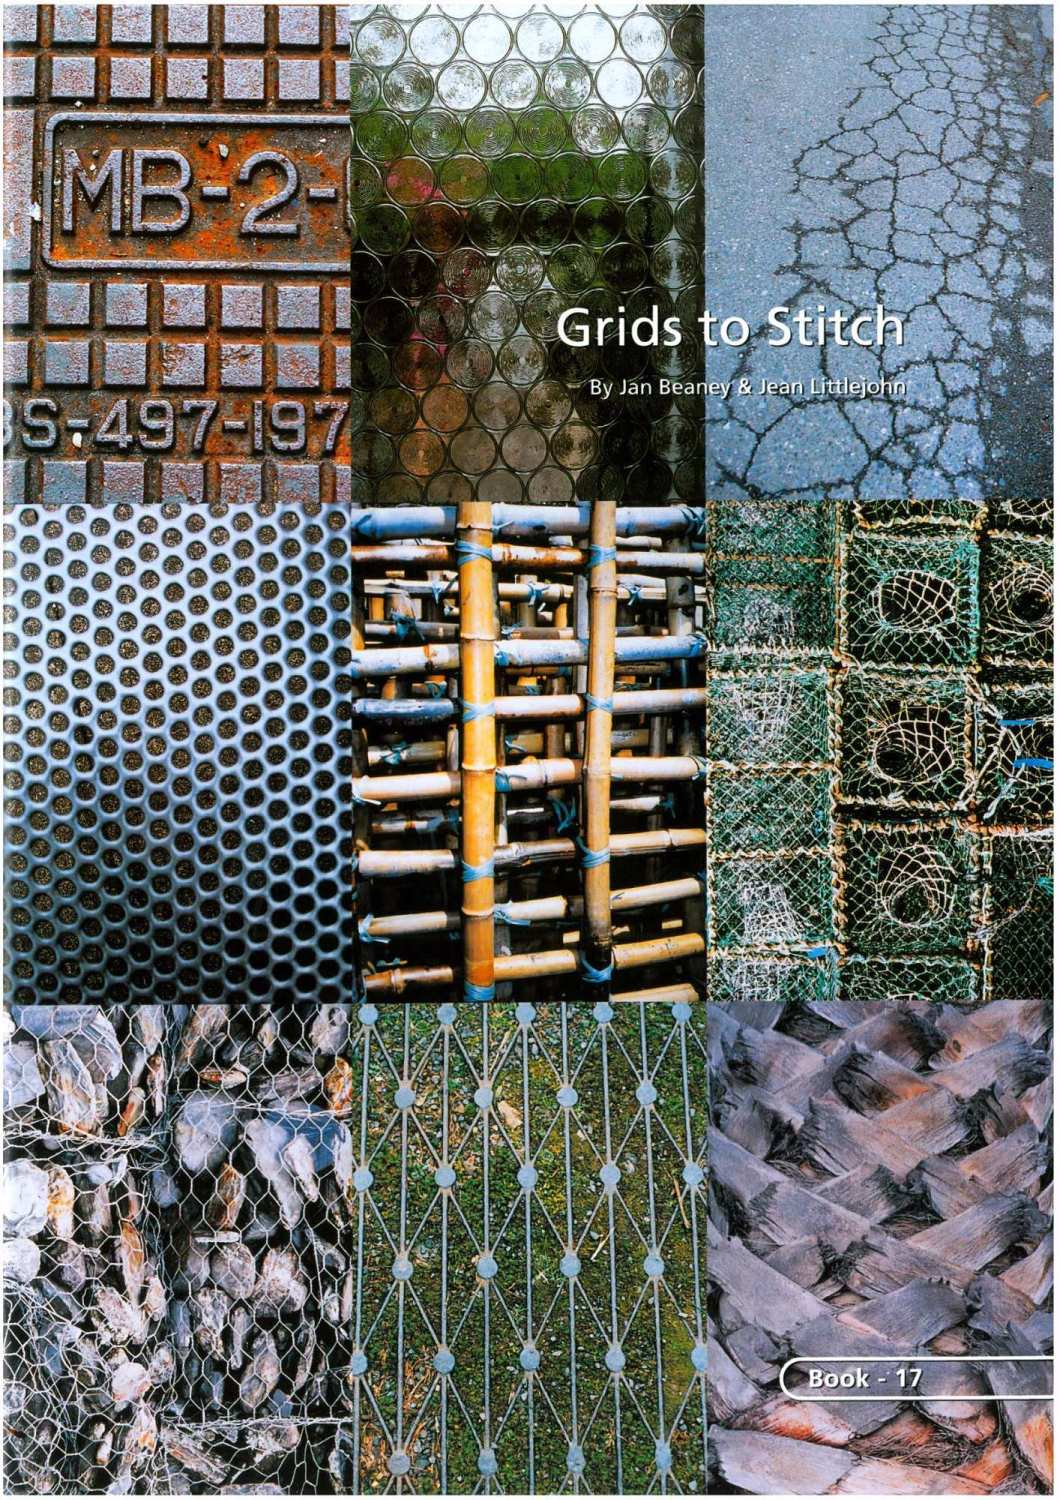 BOOK 17 – GRIDS TO STITCH. By Jan Beaney and Jean Littlejohn